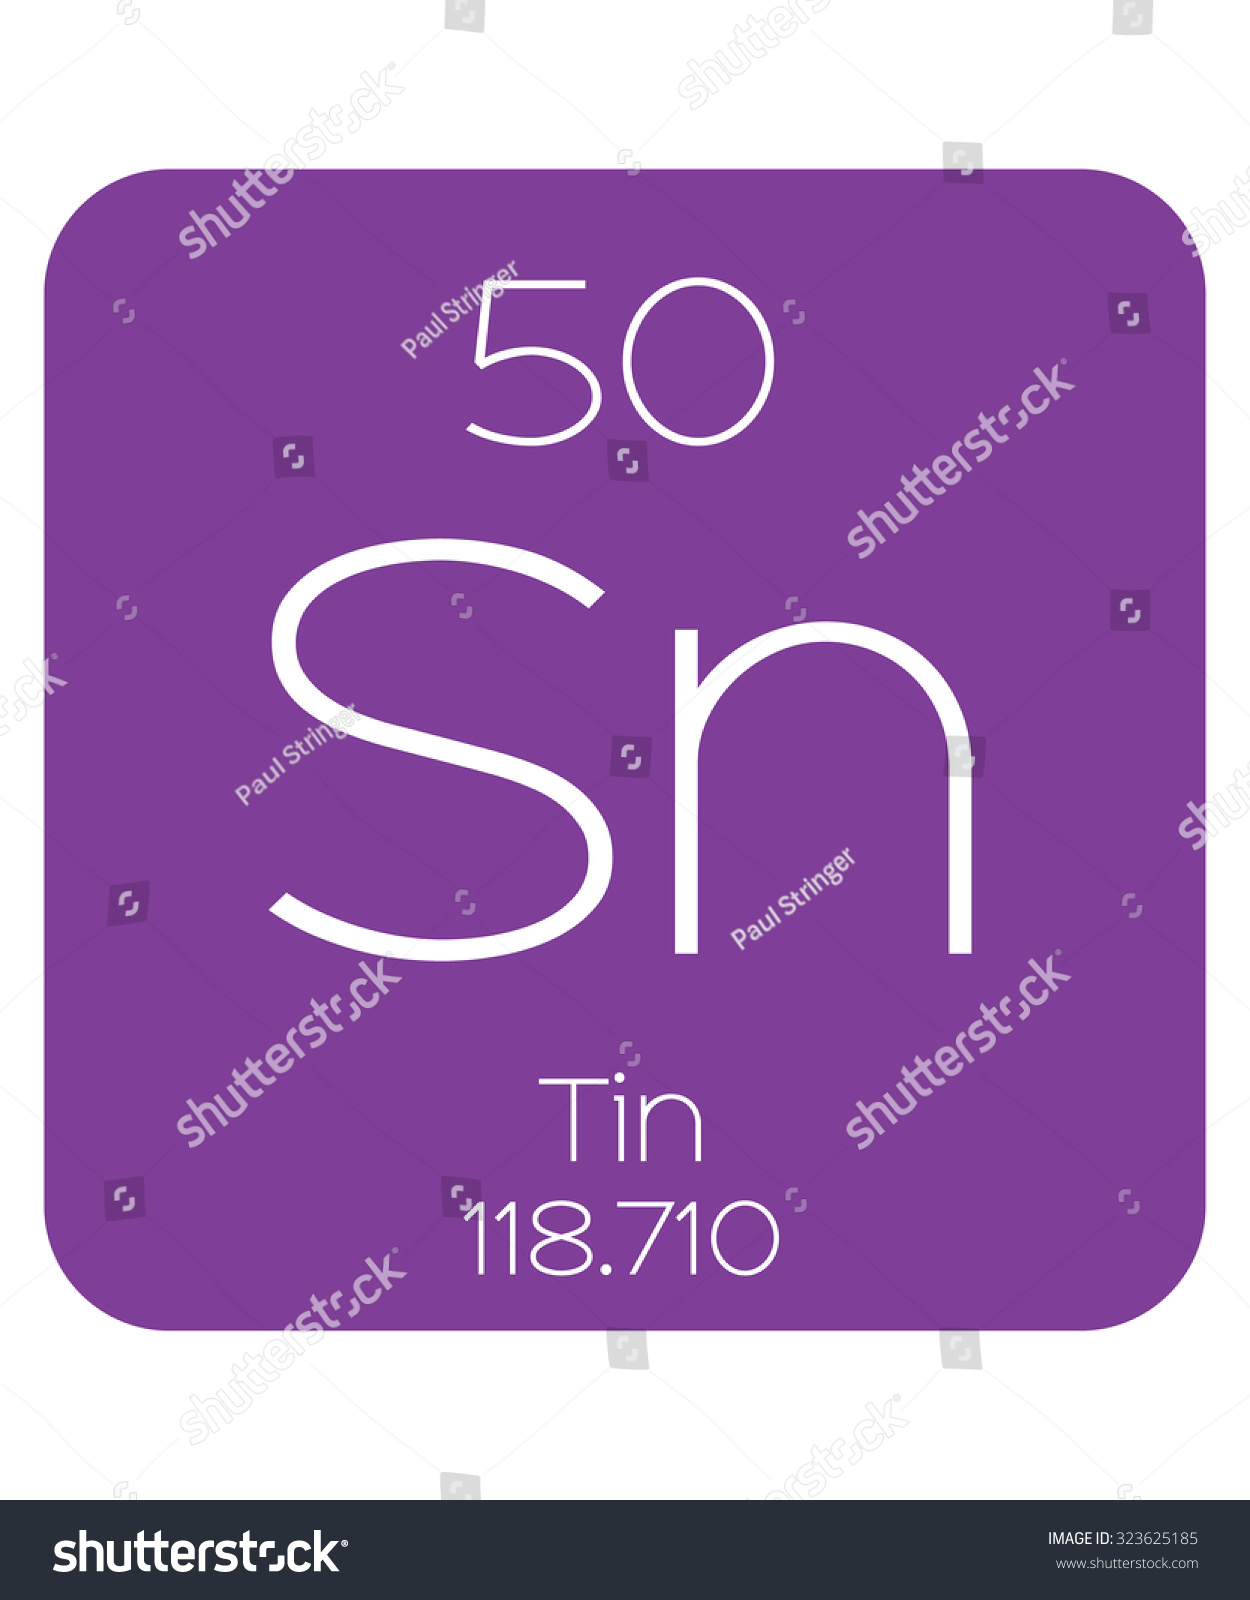 Where is tin located on the periodic table image collections tin symbol periodic table images periodic table images where is tin located on the periodic table gamestrikefo Gallery